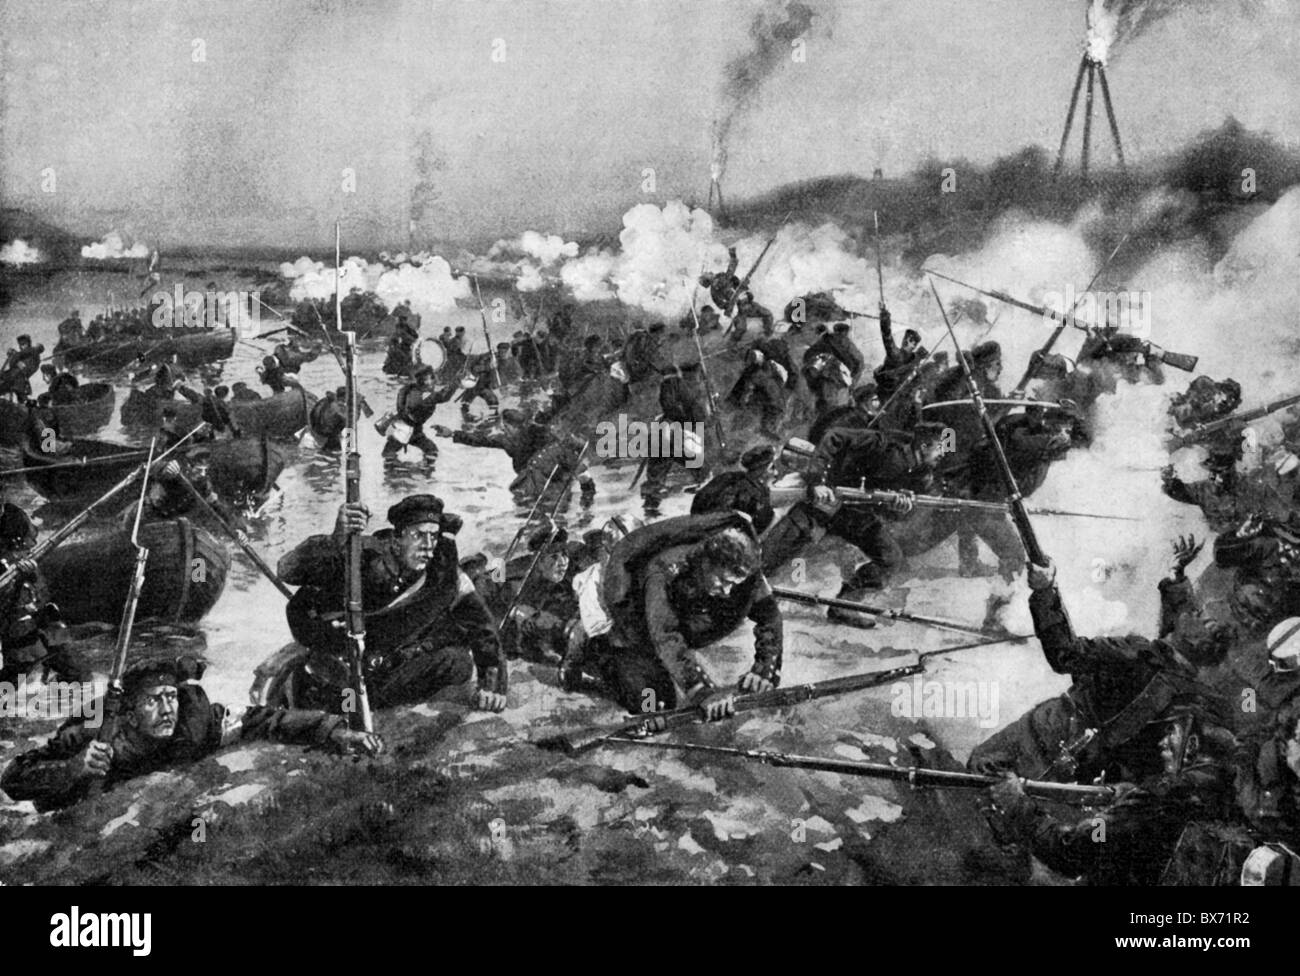 events, Second War of Schleswig 1864, Battle of Als, 29.6.1864, Prussian  troops crossing the Alssund and landing on Als Island, print after painting  by ...